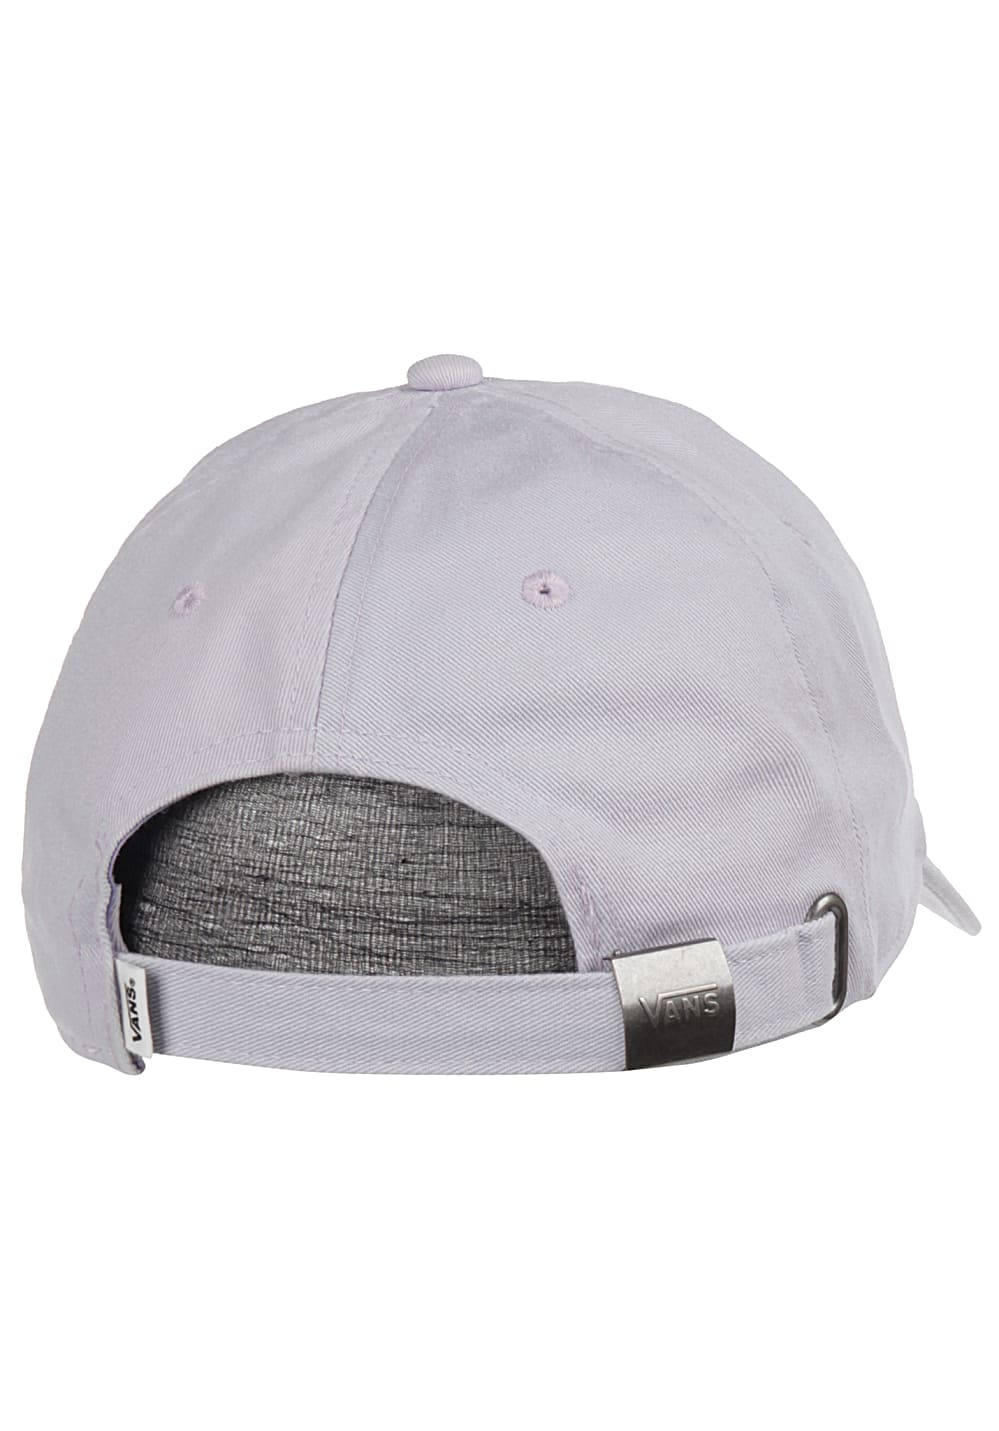 0160c7cb6e4 Vans Court Side - Strapback Cap for Women - Purple - Planet Sports